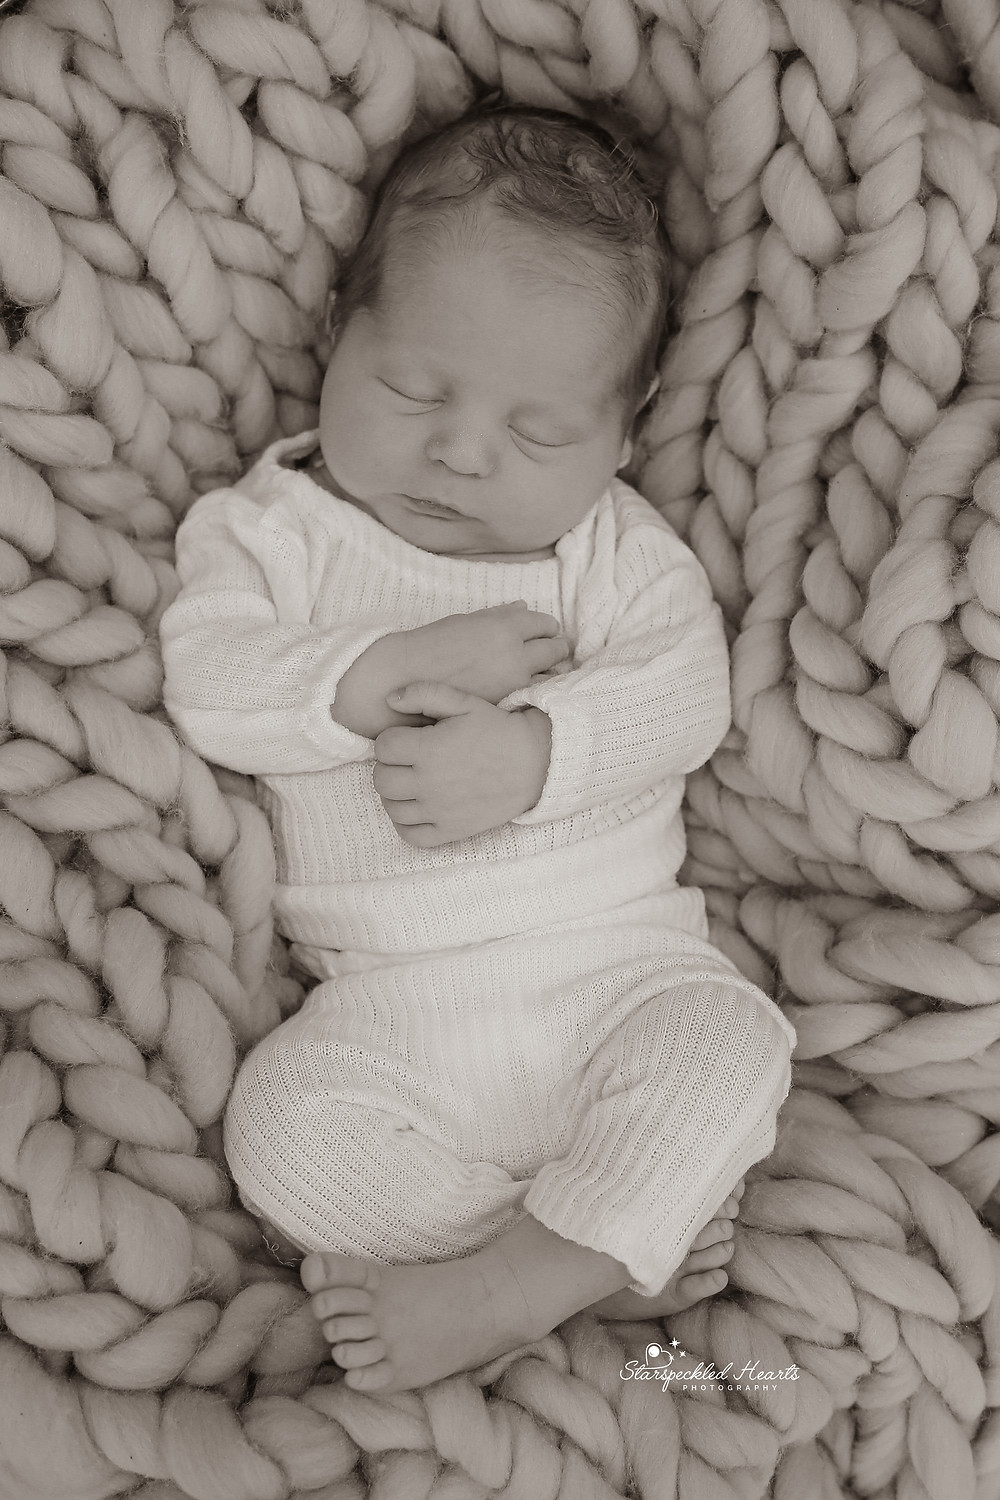 adorable sleeping baby boy, laying on a cable knit blanket